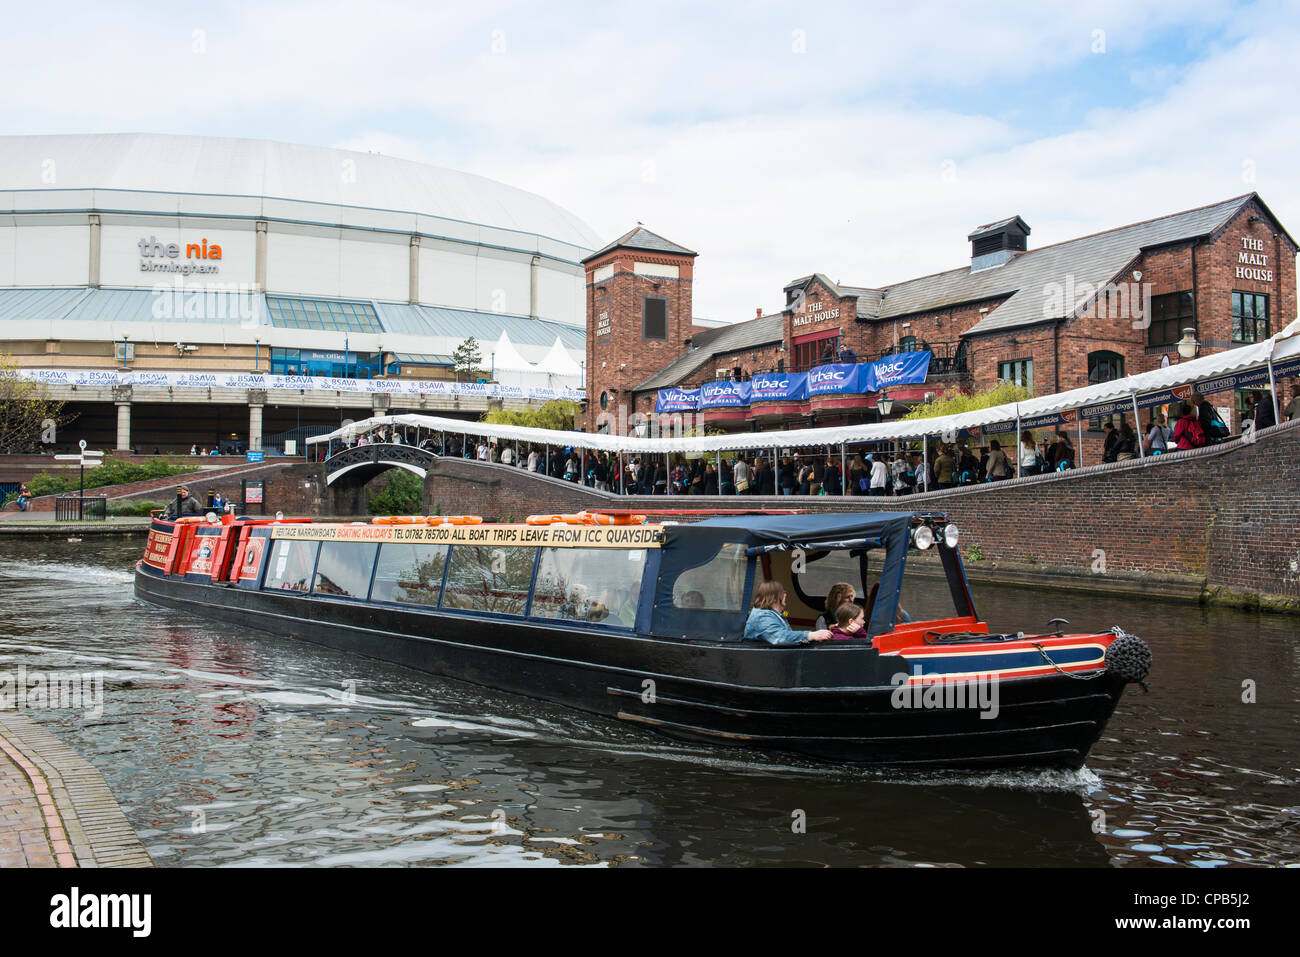 A canal barge passes the National Indoor Arena during a conference at the venue. - Stock Image